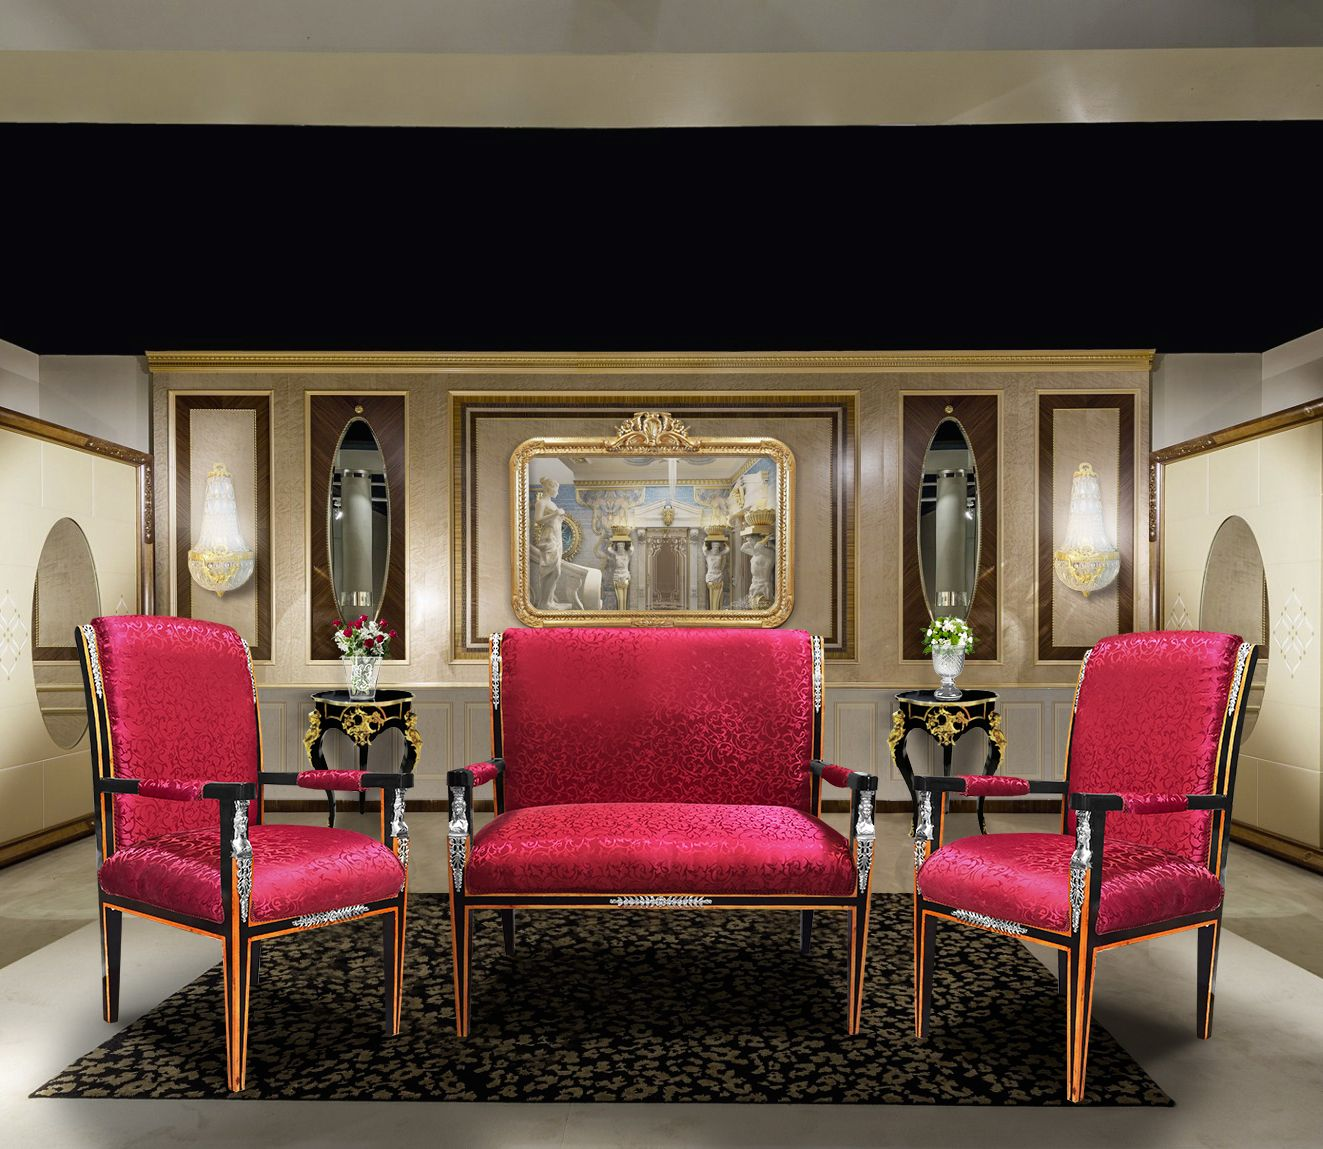 Empire style sofa golden satin fabric and black lacquered wood with bronze